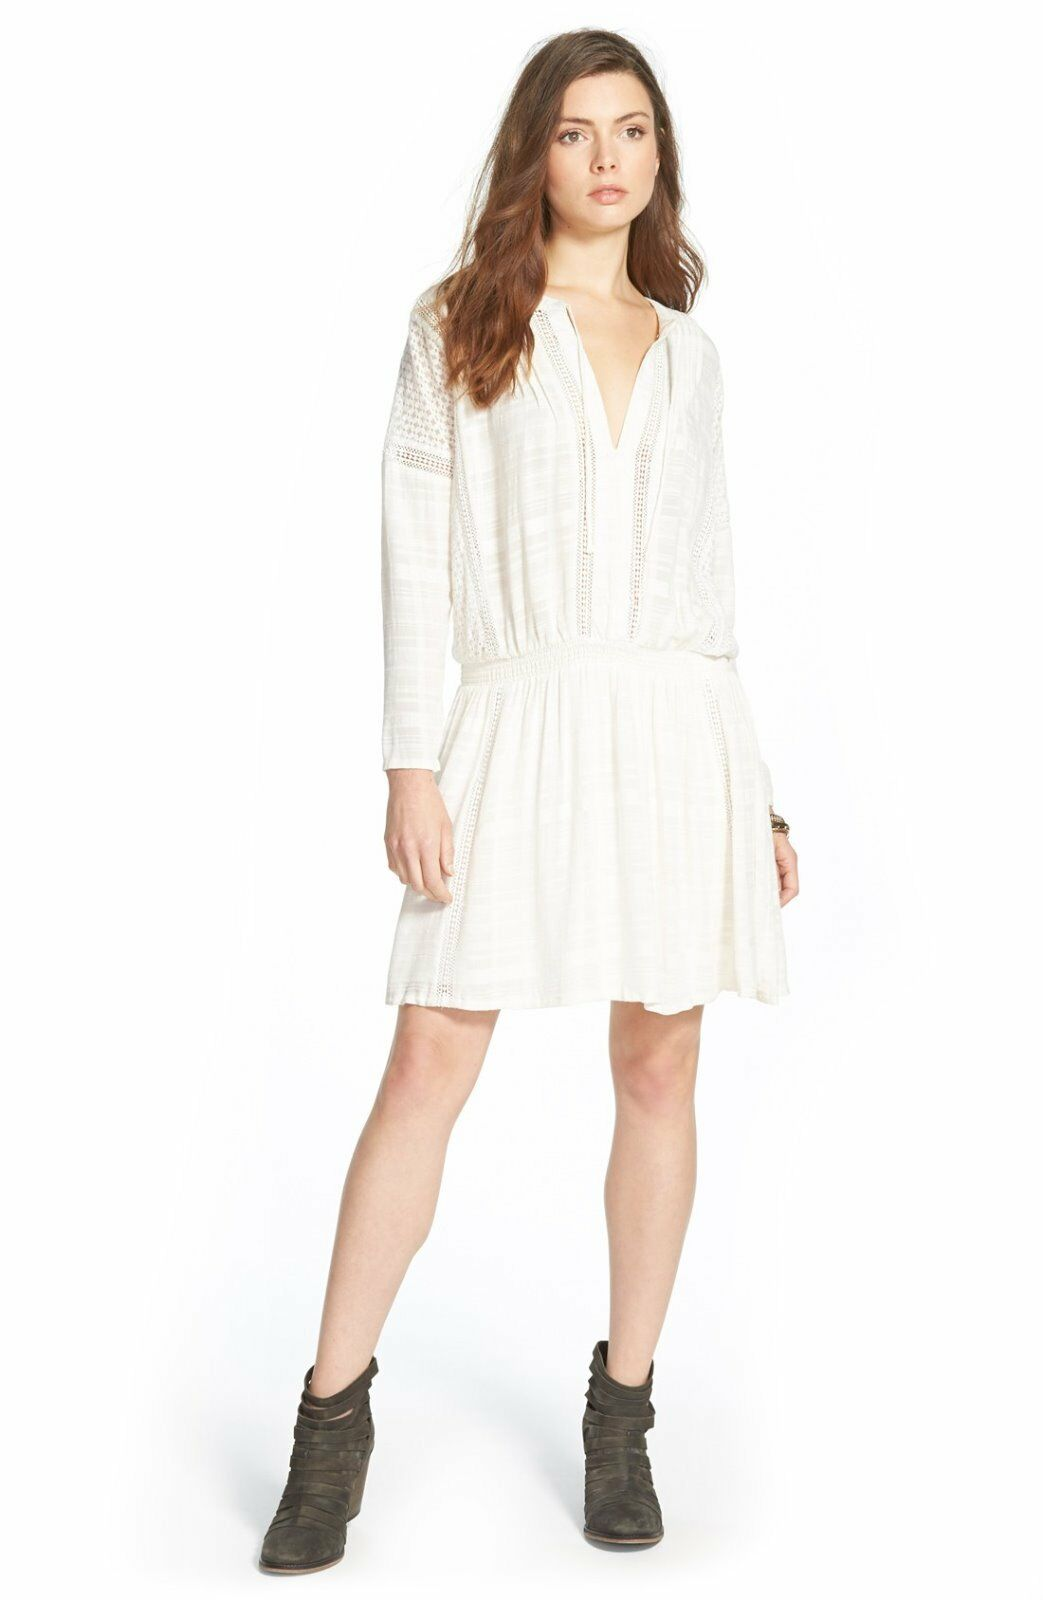 FREE PEOPLE Woherren New Weiß 'NOMAD' Peasant Boho Pintucked above Knee Dress M